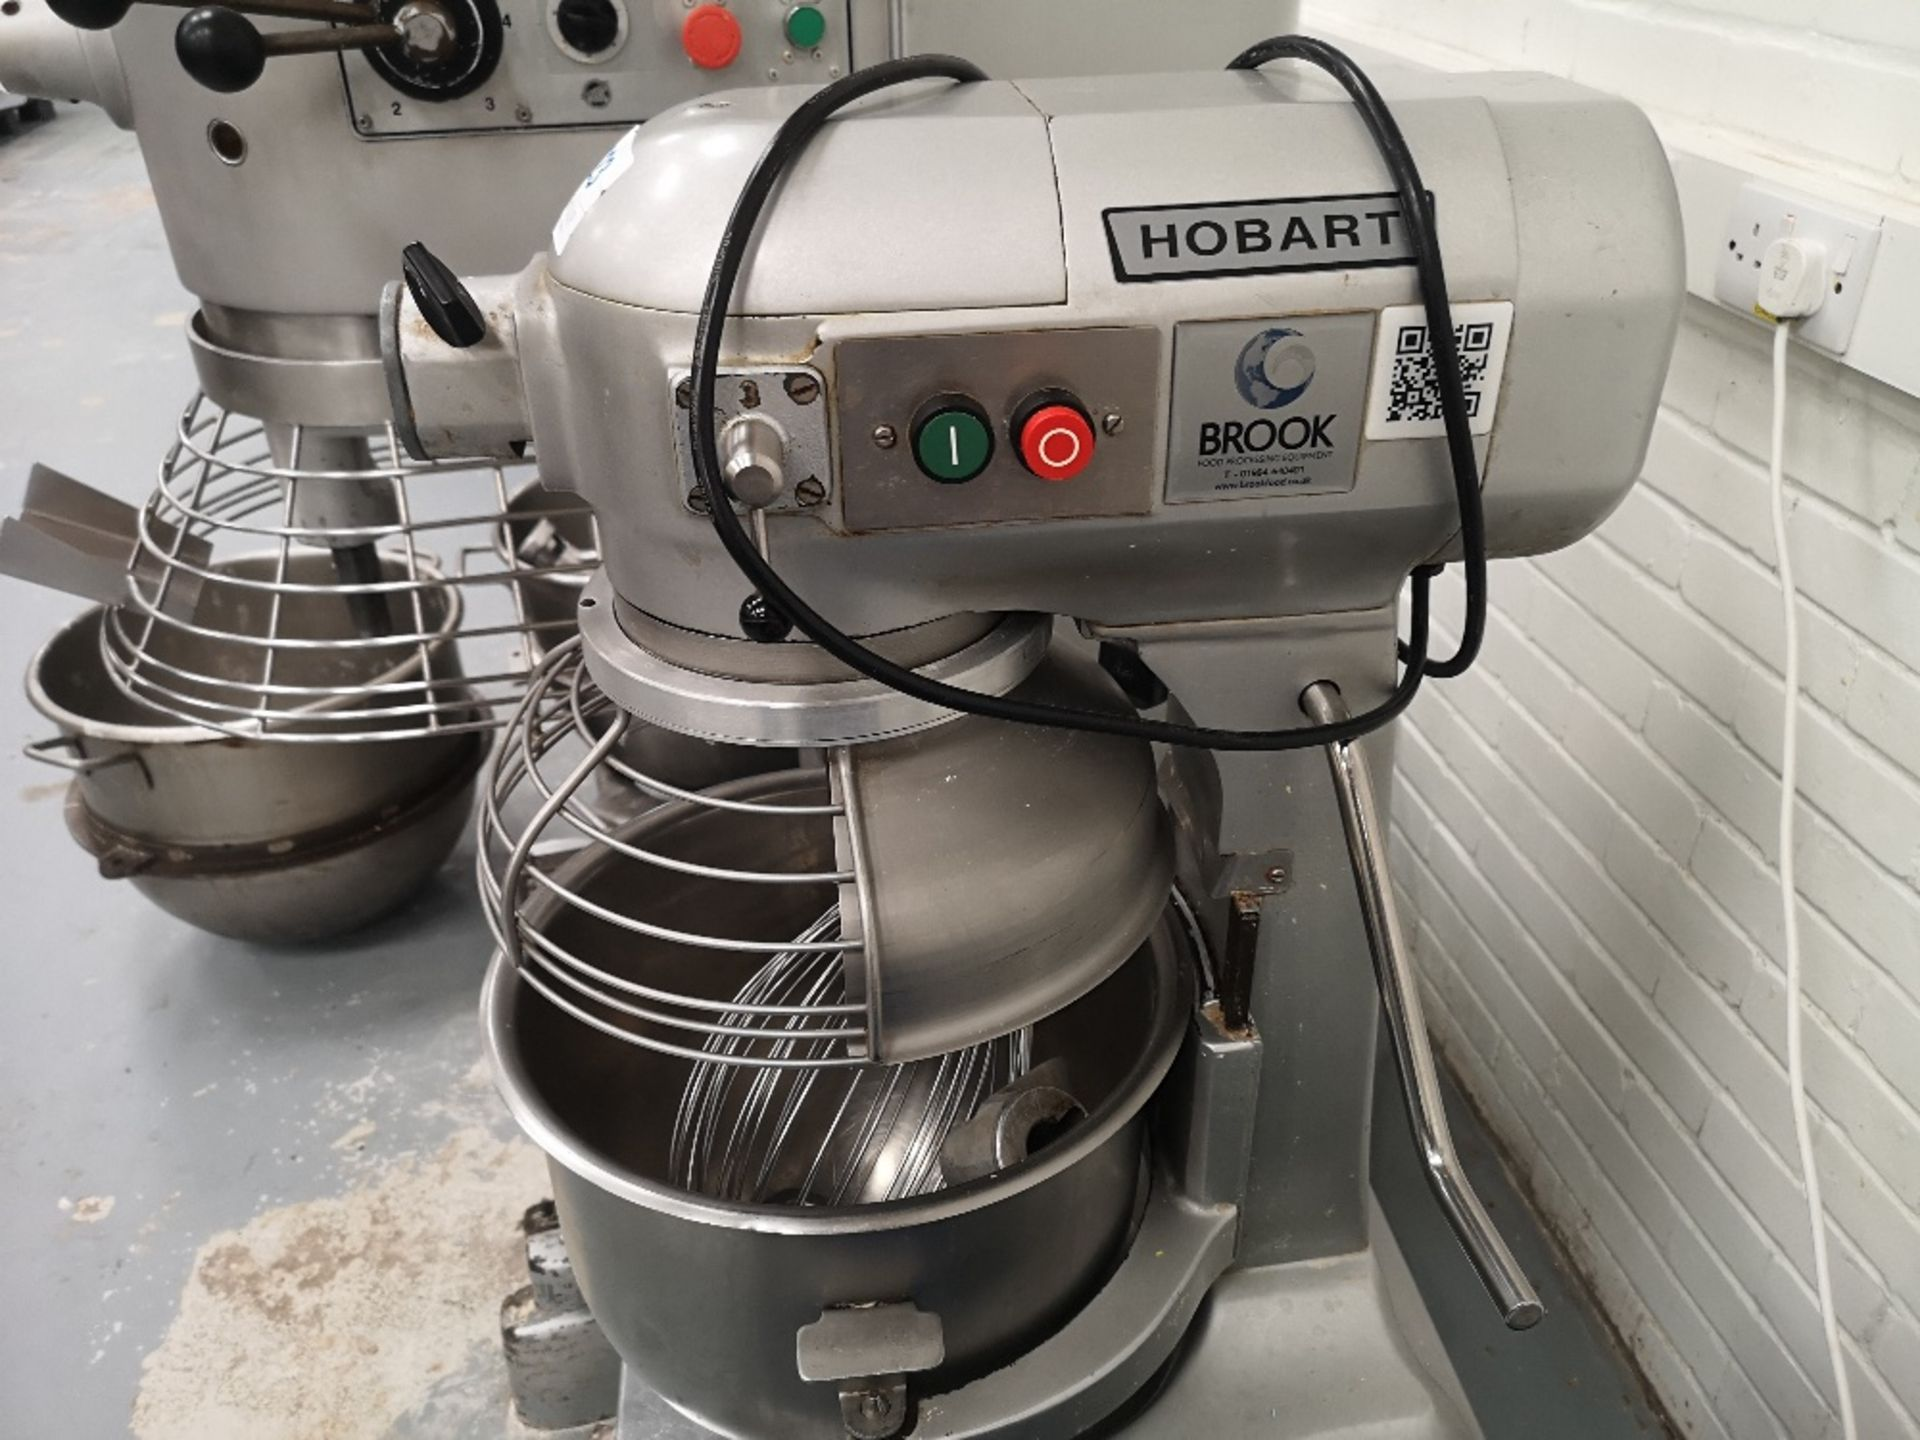 Hobart 20 QRT Planetary Mixer on Stainless Steel Mobile Stand with (2) Mixing Bowls - Image 5 of 6